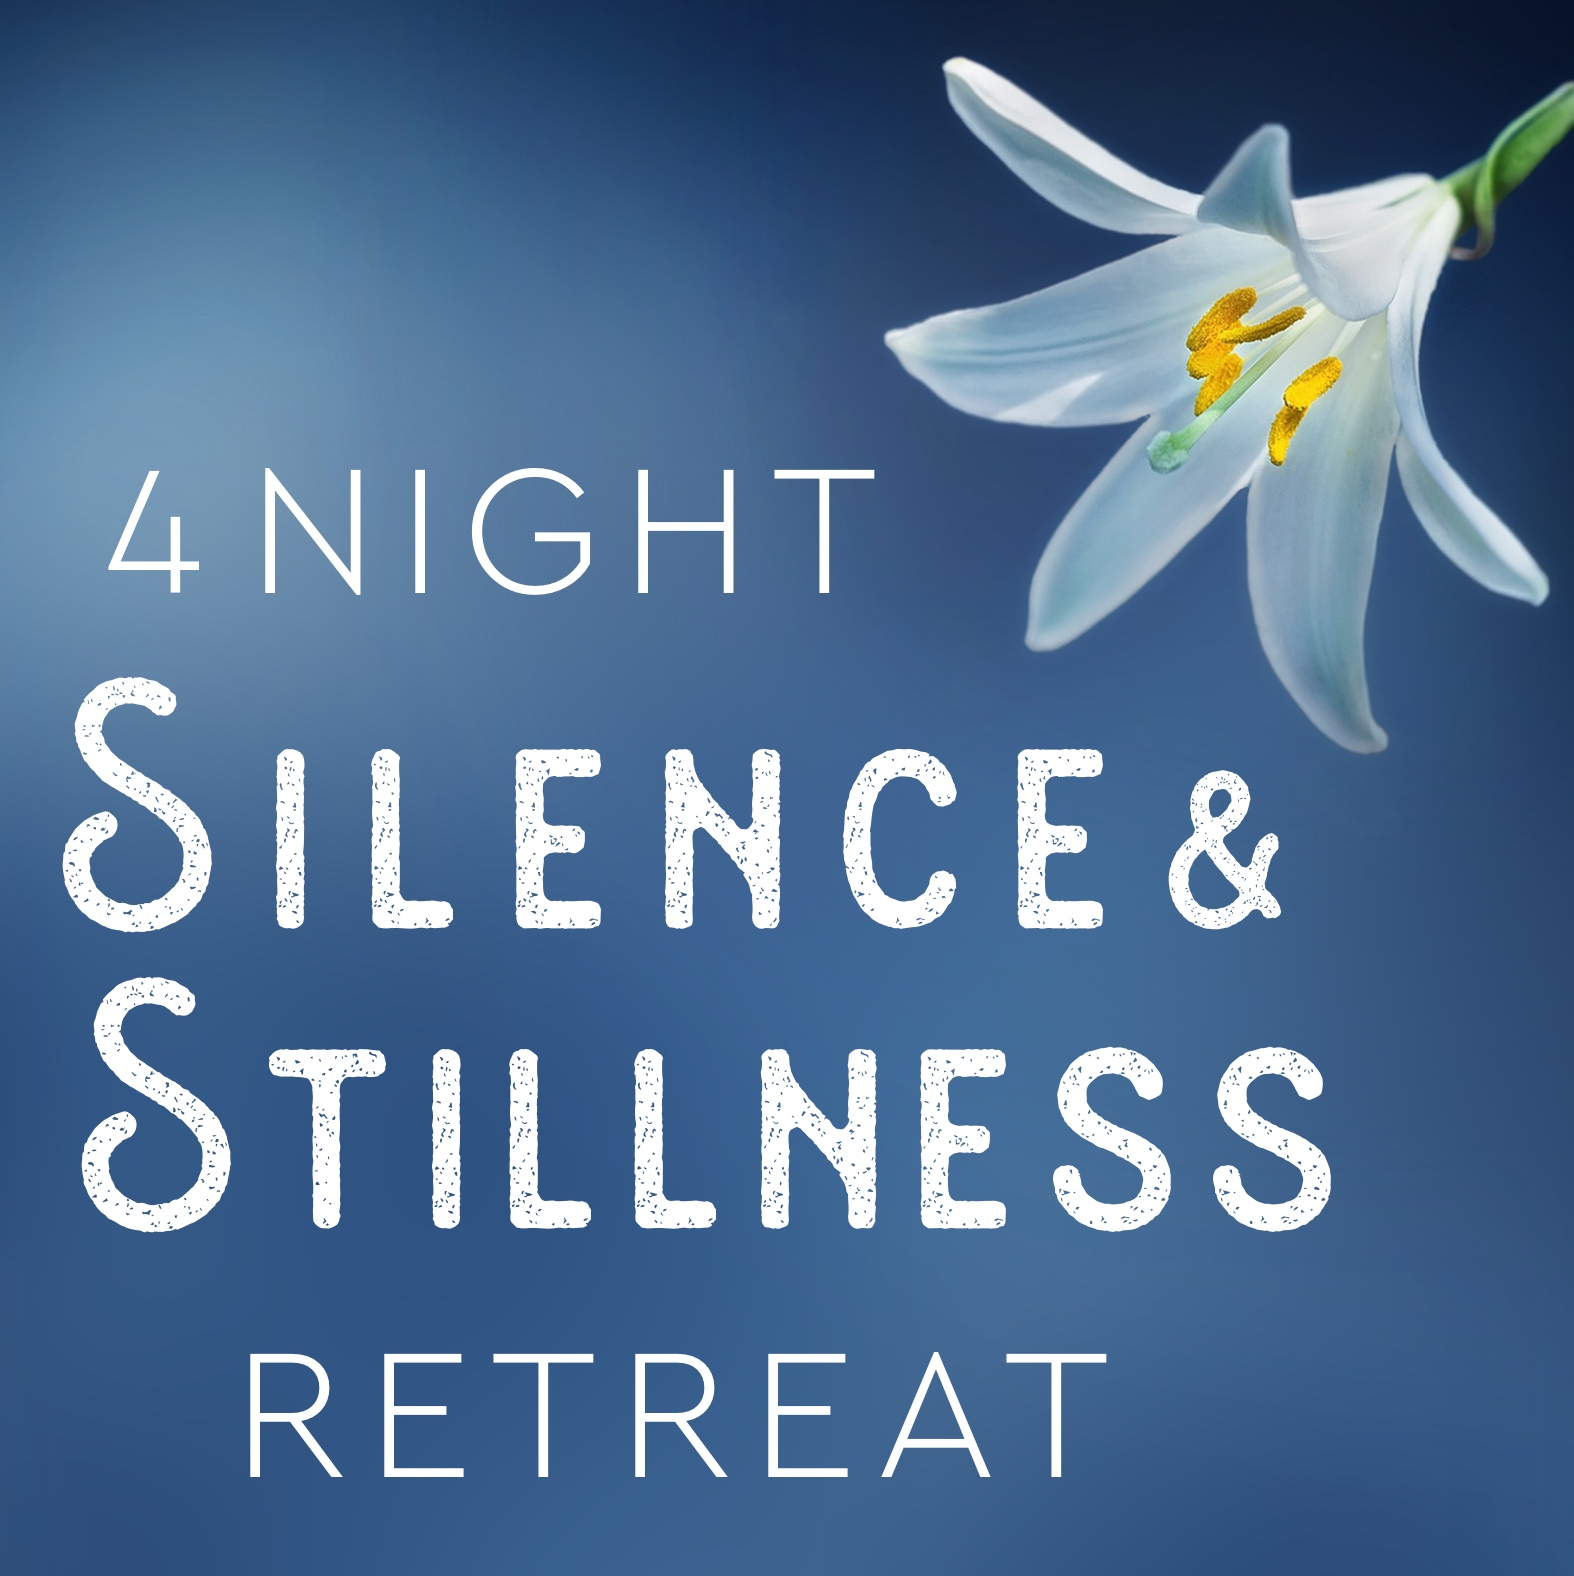 4 night silent retreat uk 2019 banner